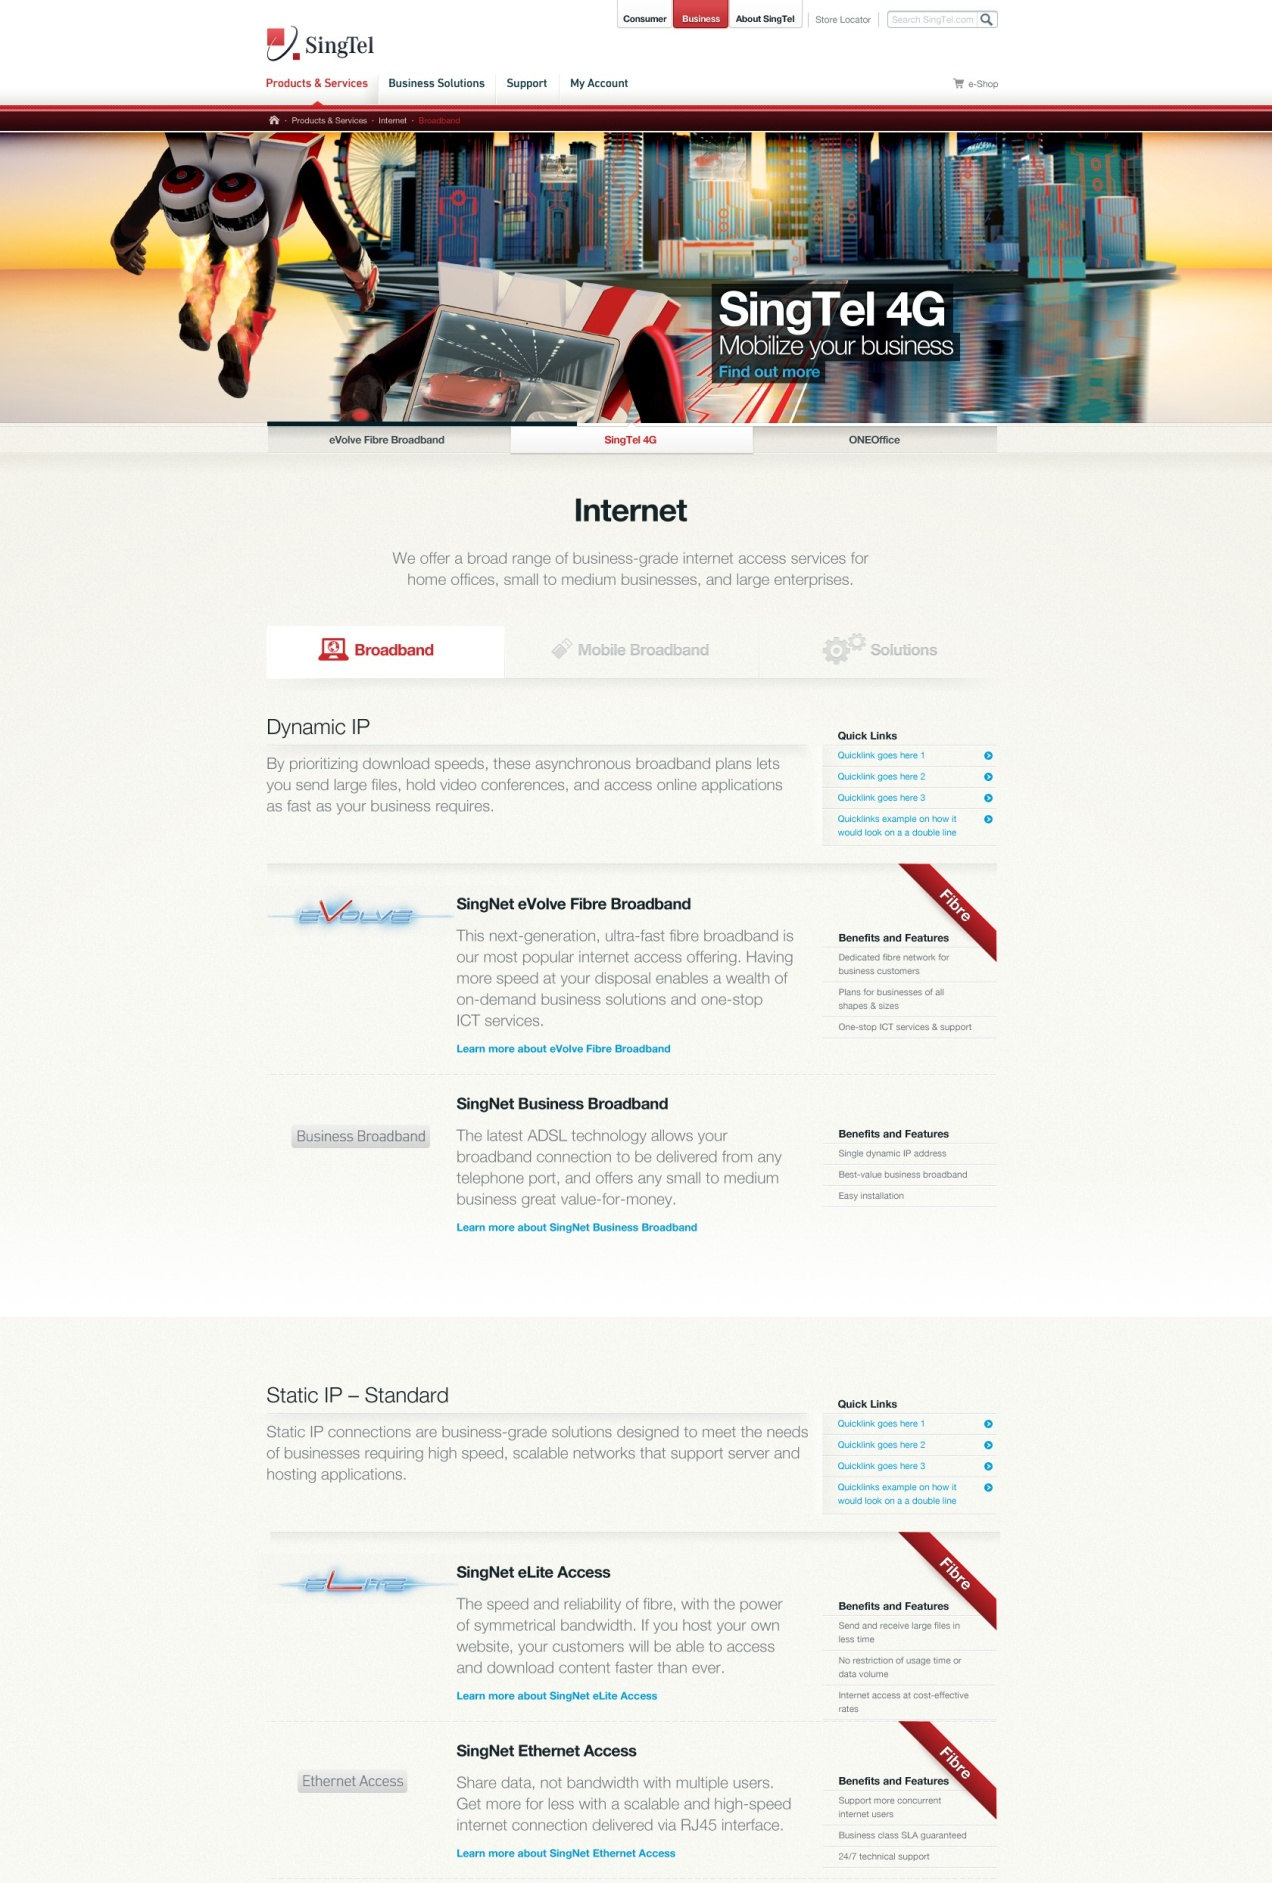 Business products landing page and categorization